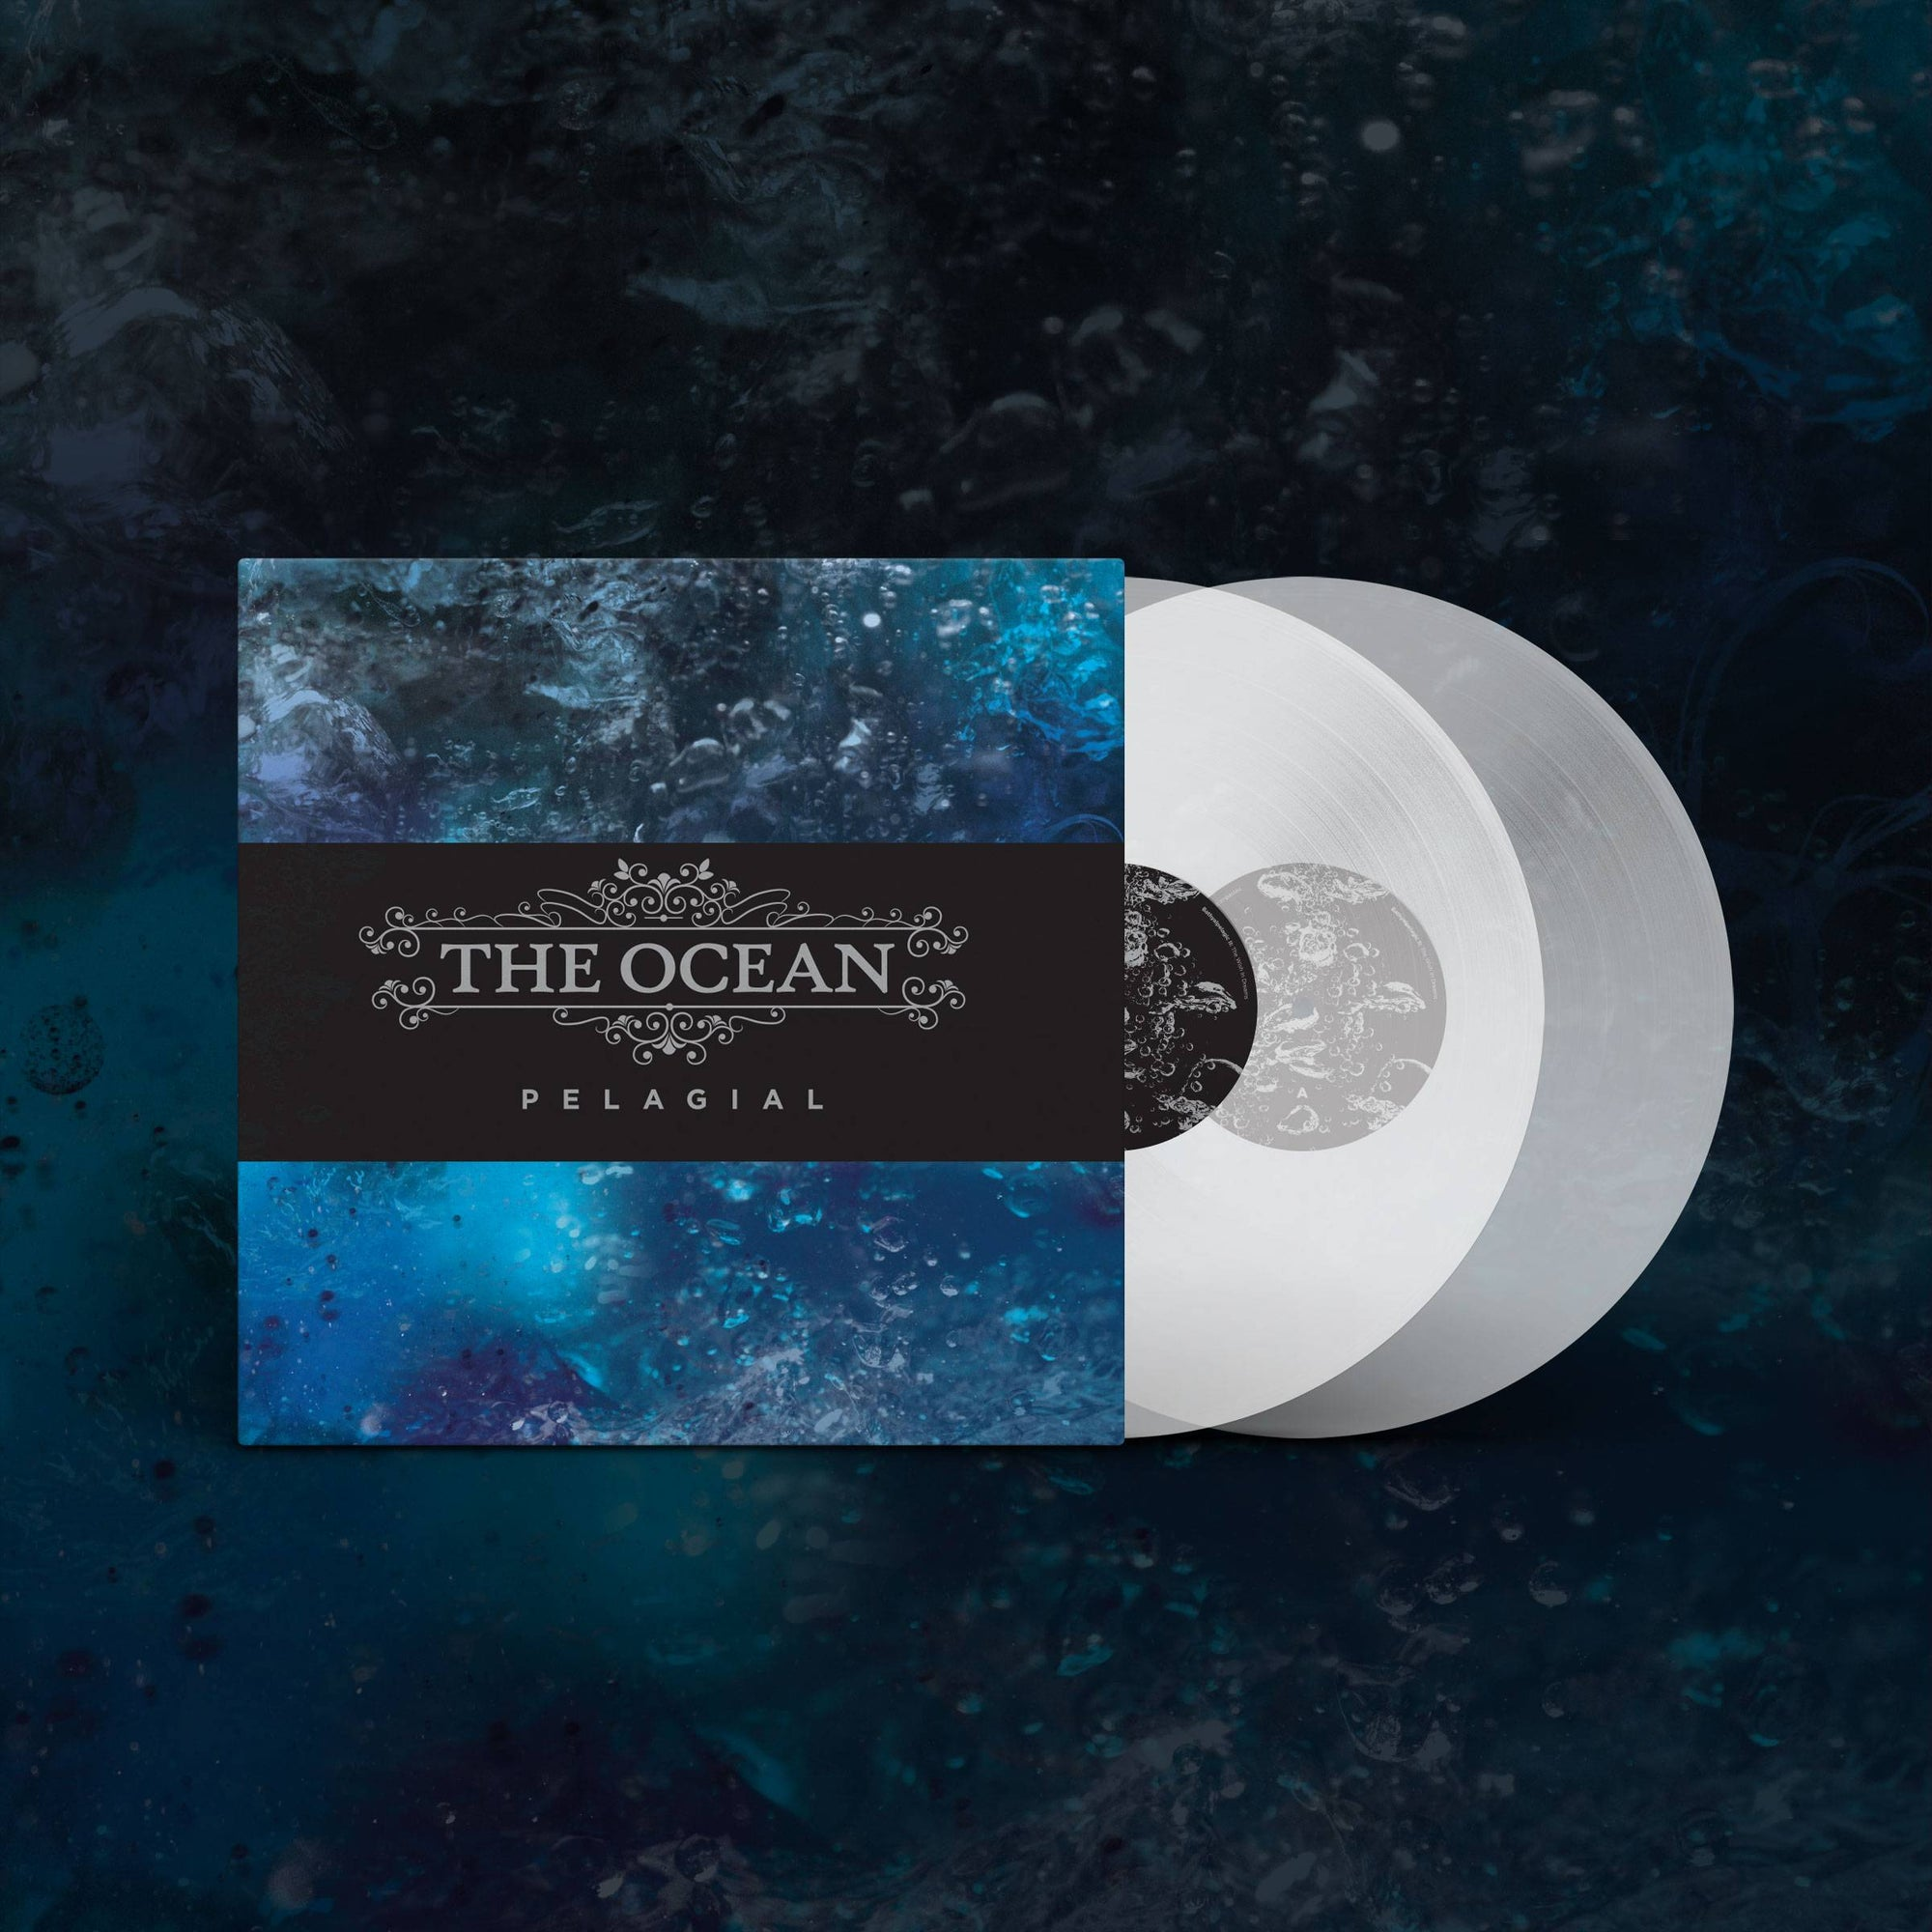 THE OCEAN // PELAGIAL - LTD EDITION VINYL (2×10″ LP REPRESS) - Wild Thing Records